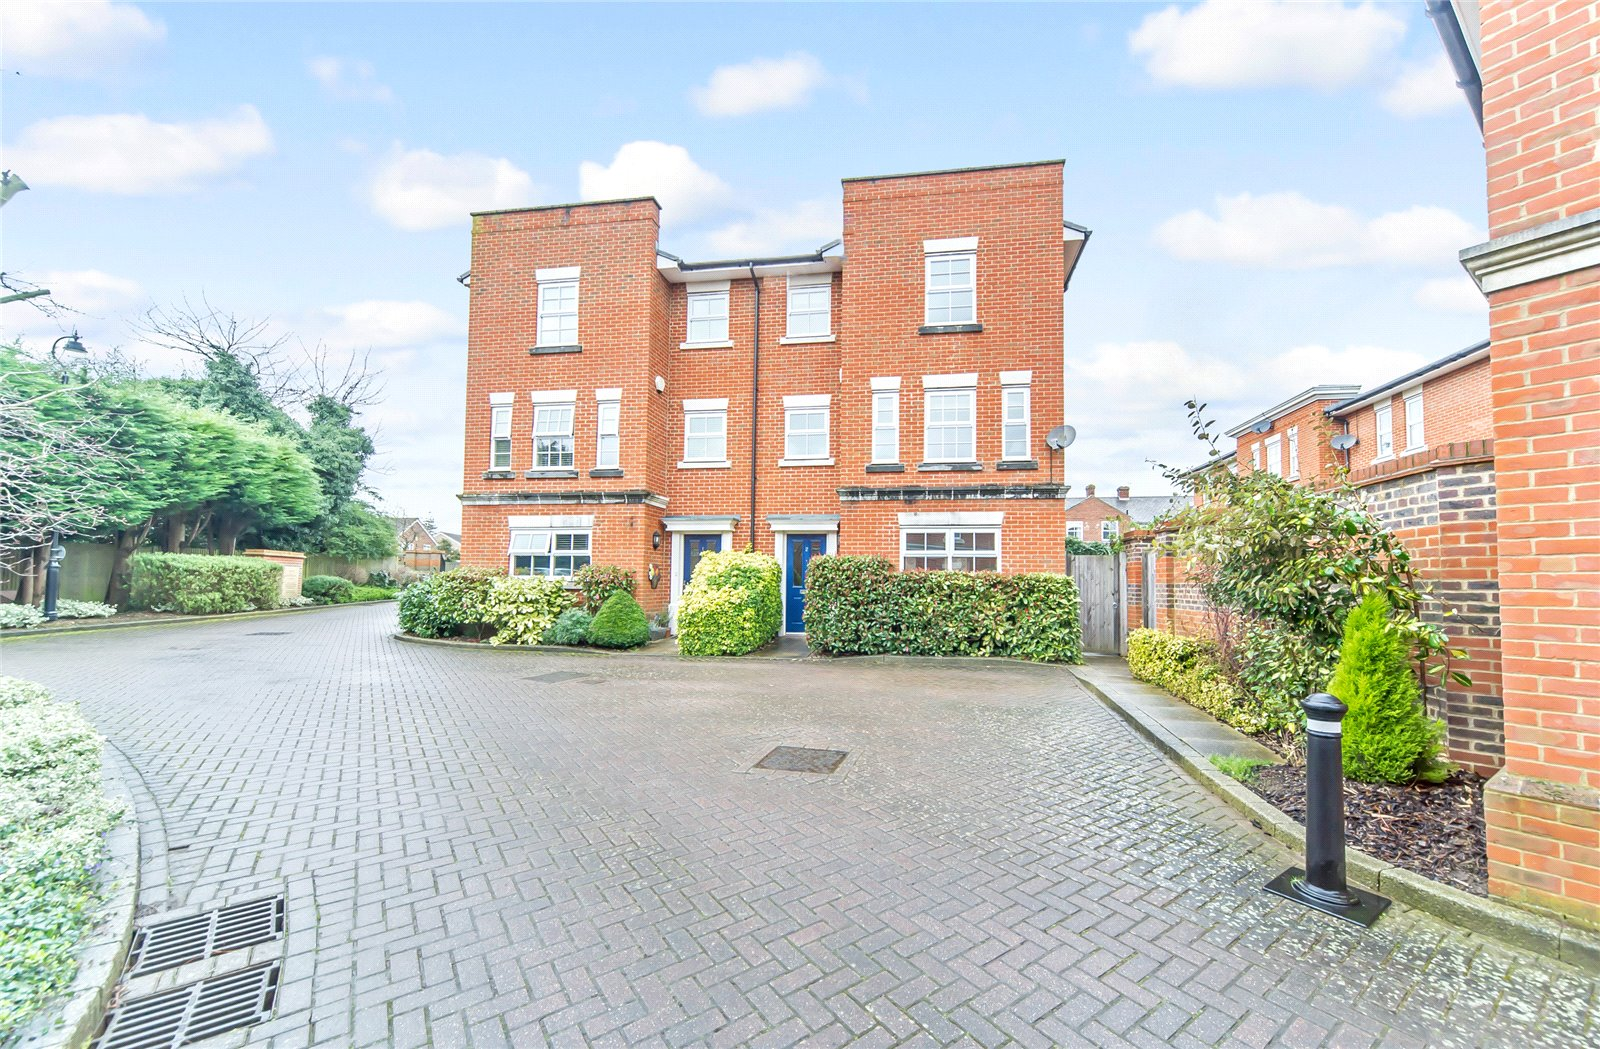 Rowan Mews, Tonbridge, Kent, TN10